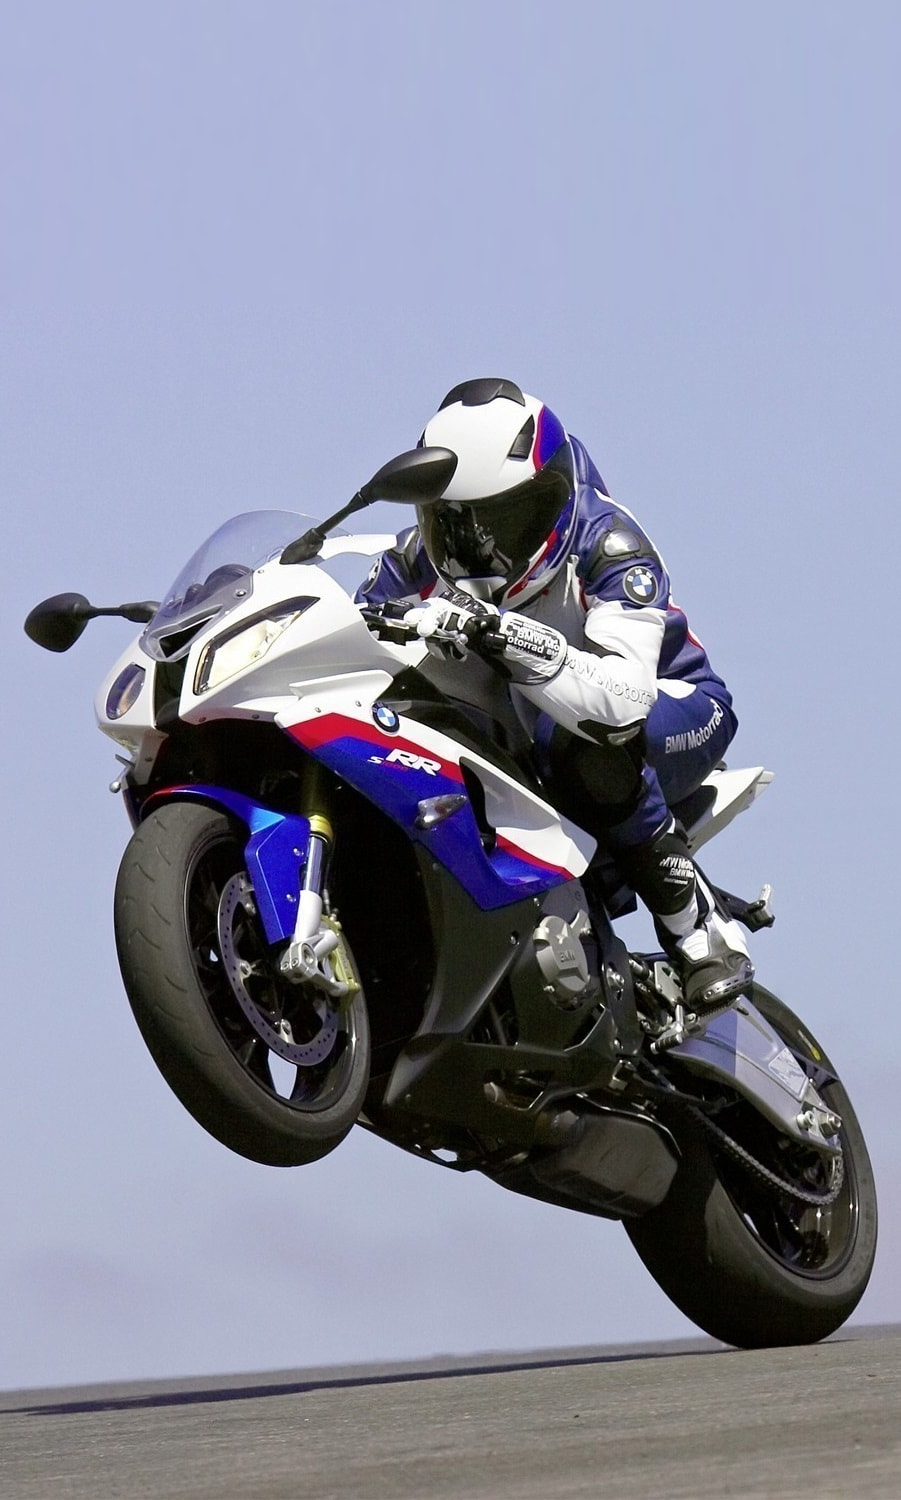 BMW S1000 RR Full Hd Wallpapers For Mobile